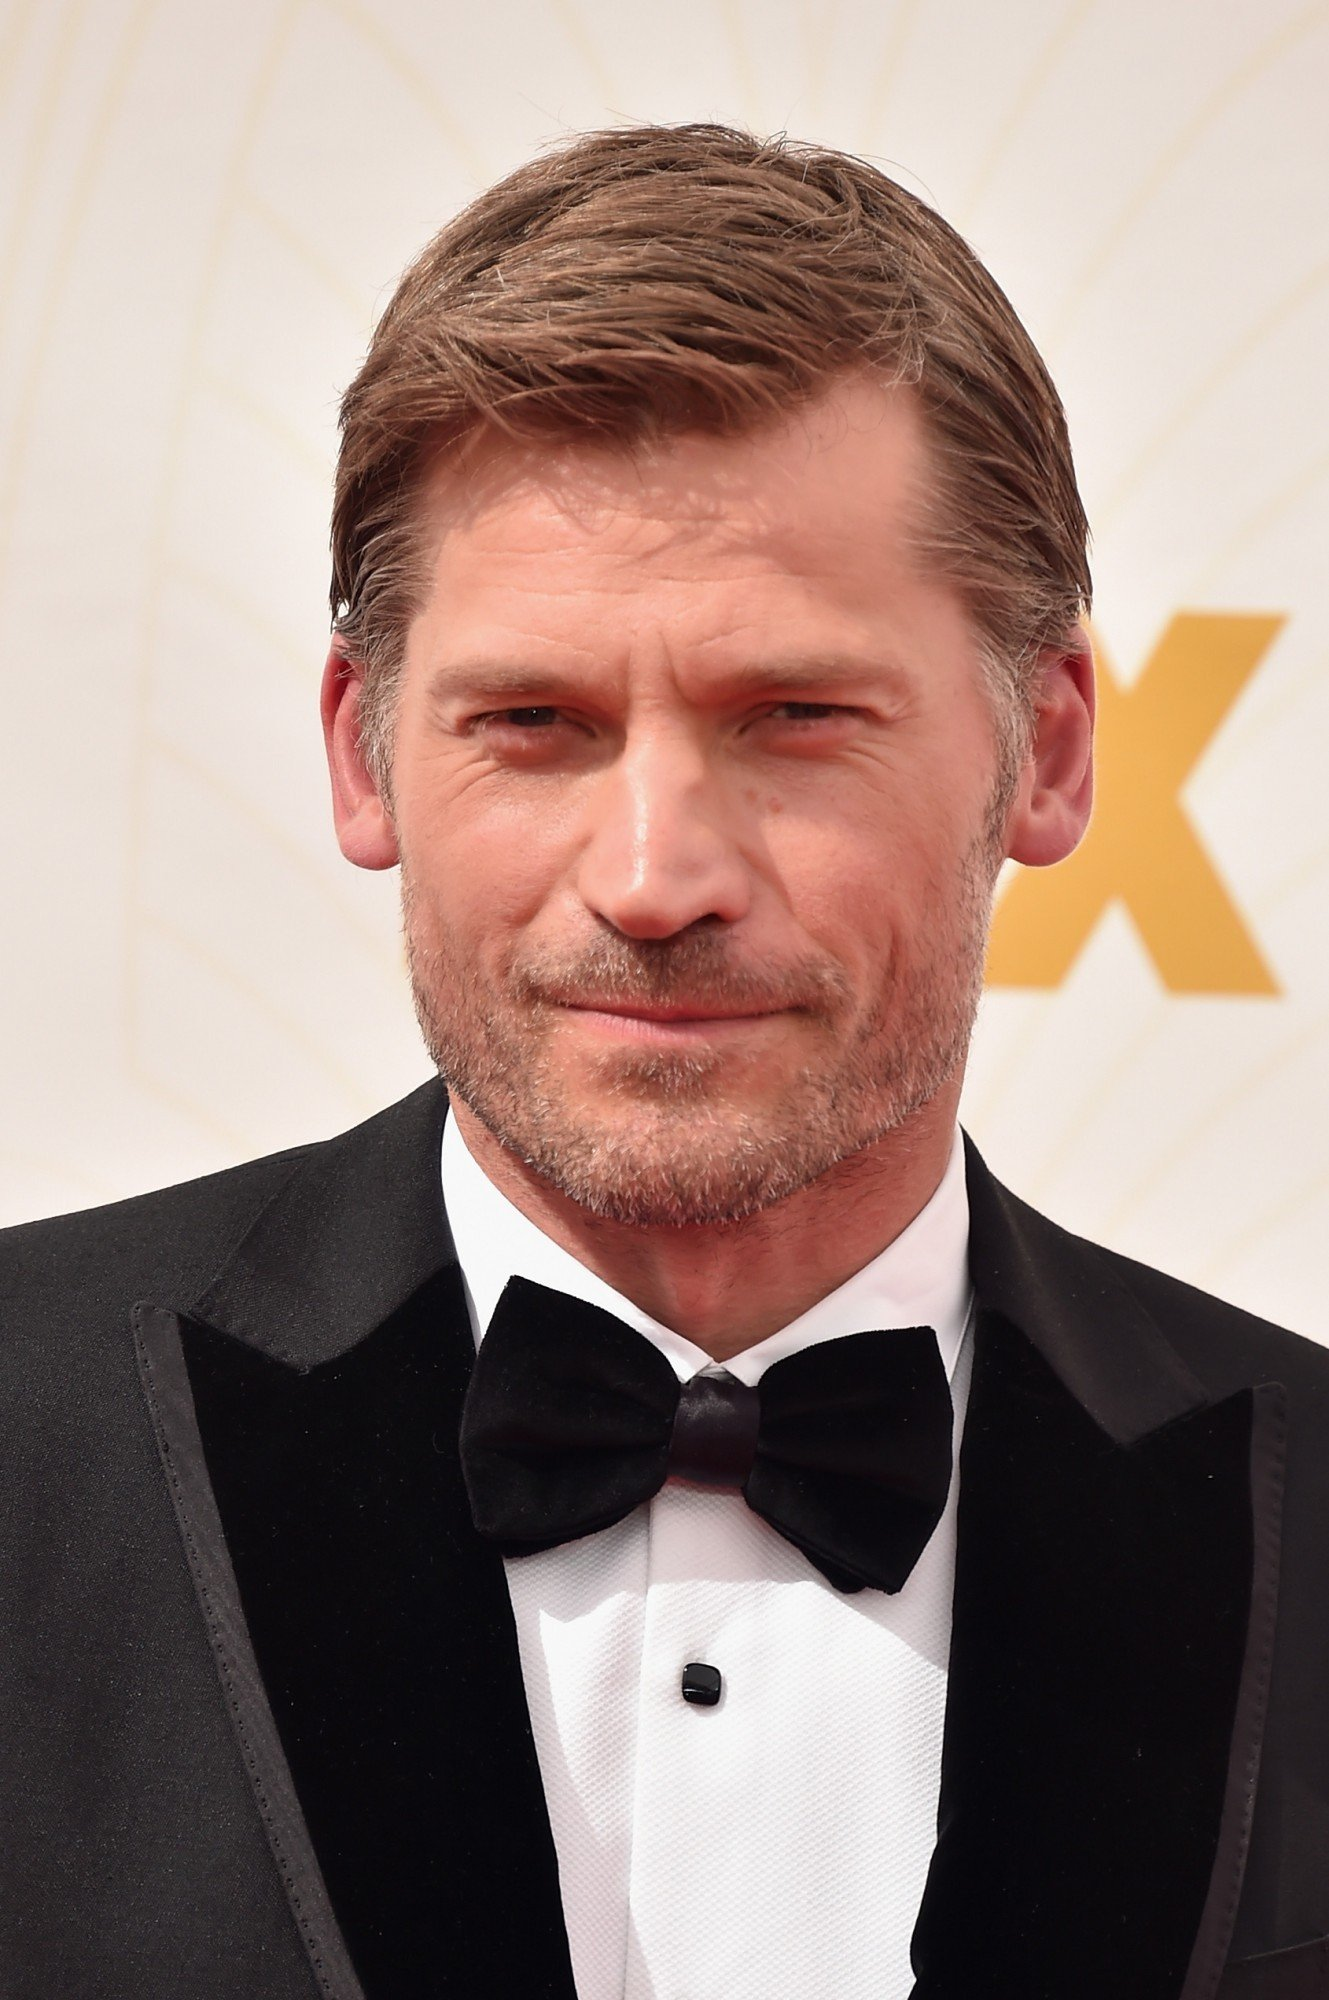 LOS ANGELES, CA - SEPTEMBER 20: Actor Nikolaj Coster-Waldau attends the 67th Emmy Awards at Microsoft Theater on September 20, 2015 in Los Angeles, California. 25720_001 (Photo by Alberto E. Rodriguez/Getty Images for TNT LA)